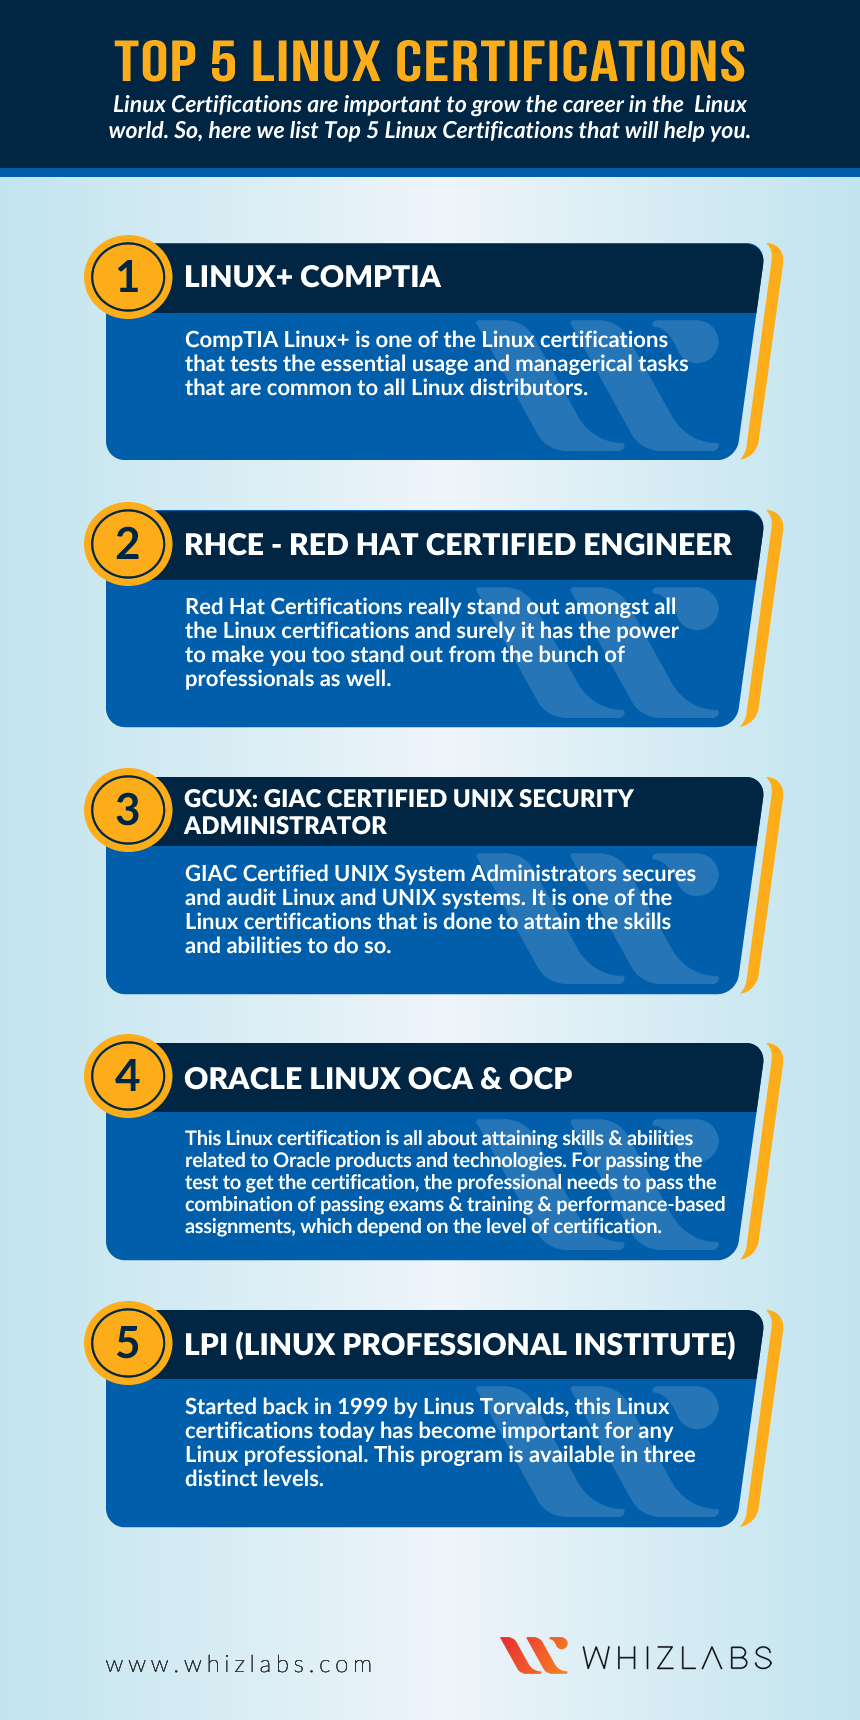 Top 5 Linux Certifications in 2019 [Updated] - Whizlabs Blog